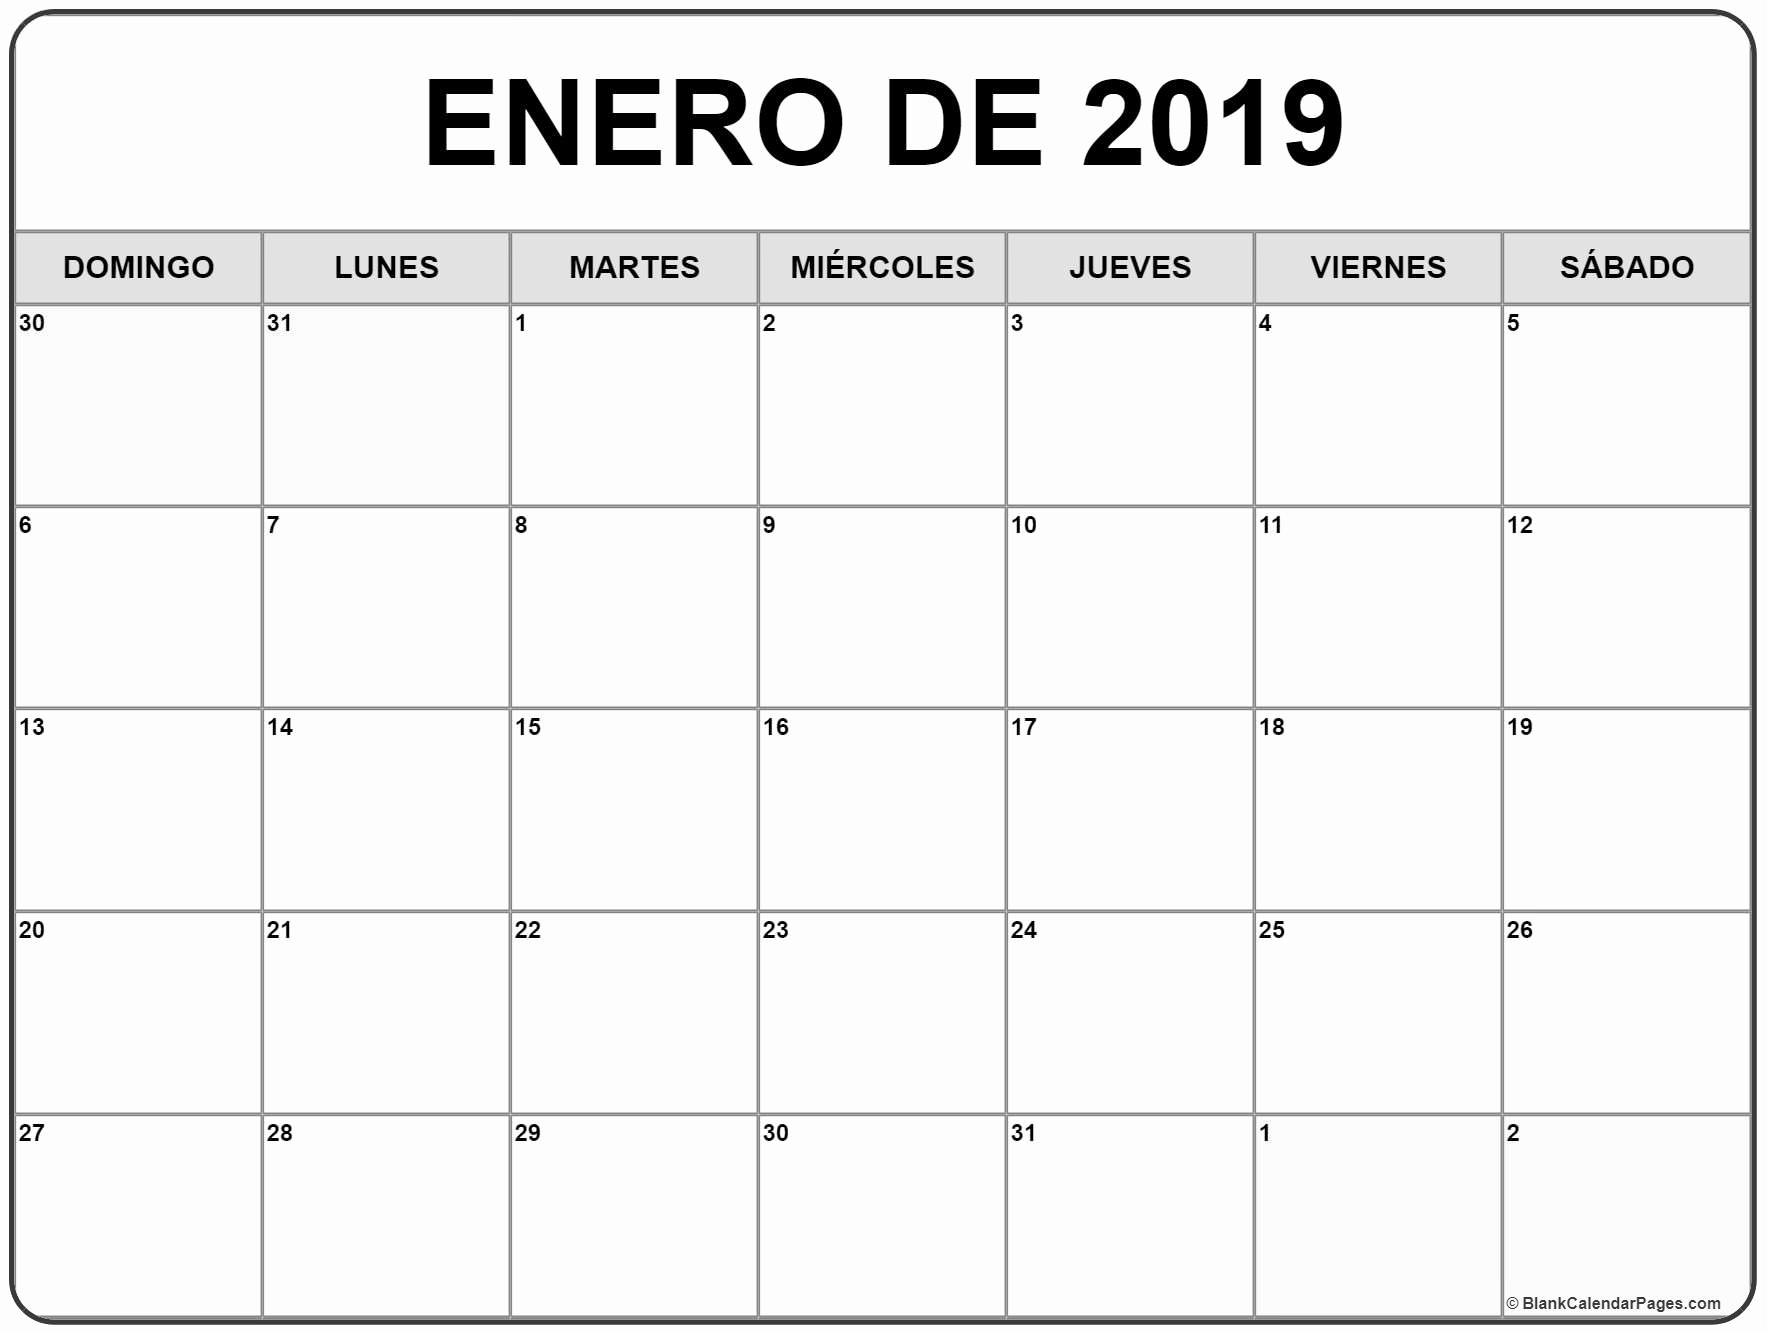 Calendario Febrero 2019 Con Santoral Más Actual Calendario Dr 2019 Calendario 2019 Of Calendario Febrero 2019 Con Santoral Más Populares Clp 2018 2019 Pages 101 150 Text Version